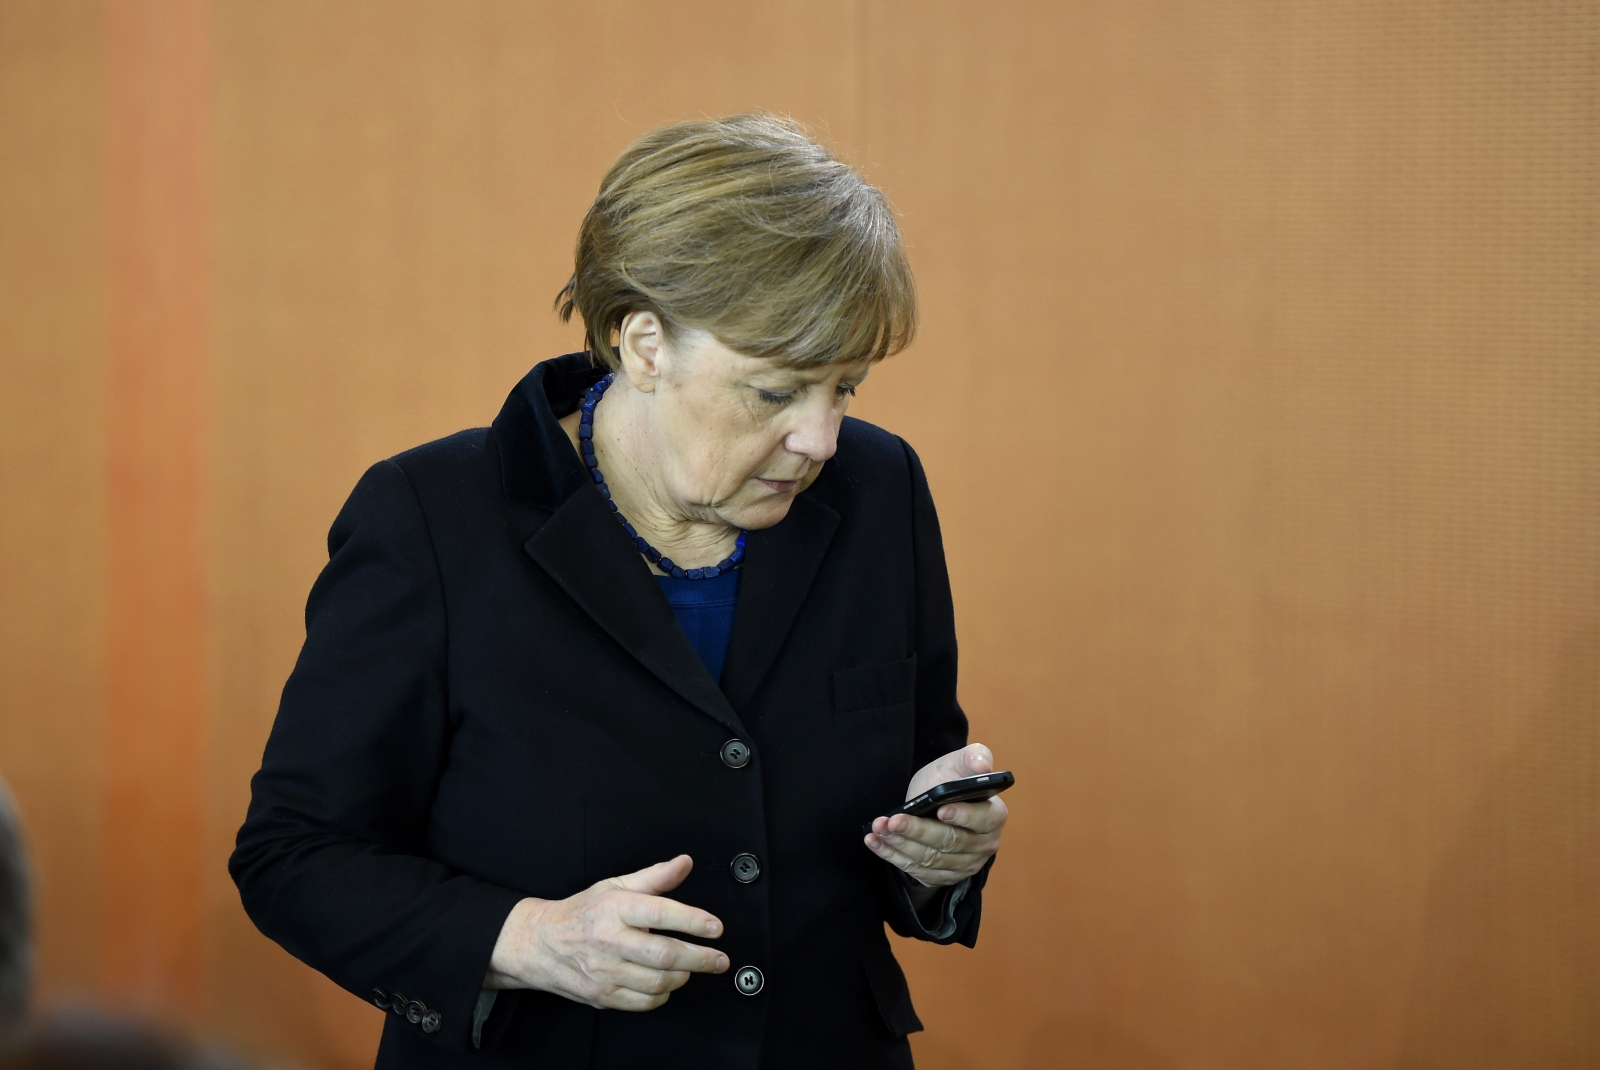 Angela Merkel PC compromised by Russian hackers